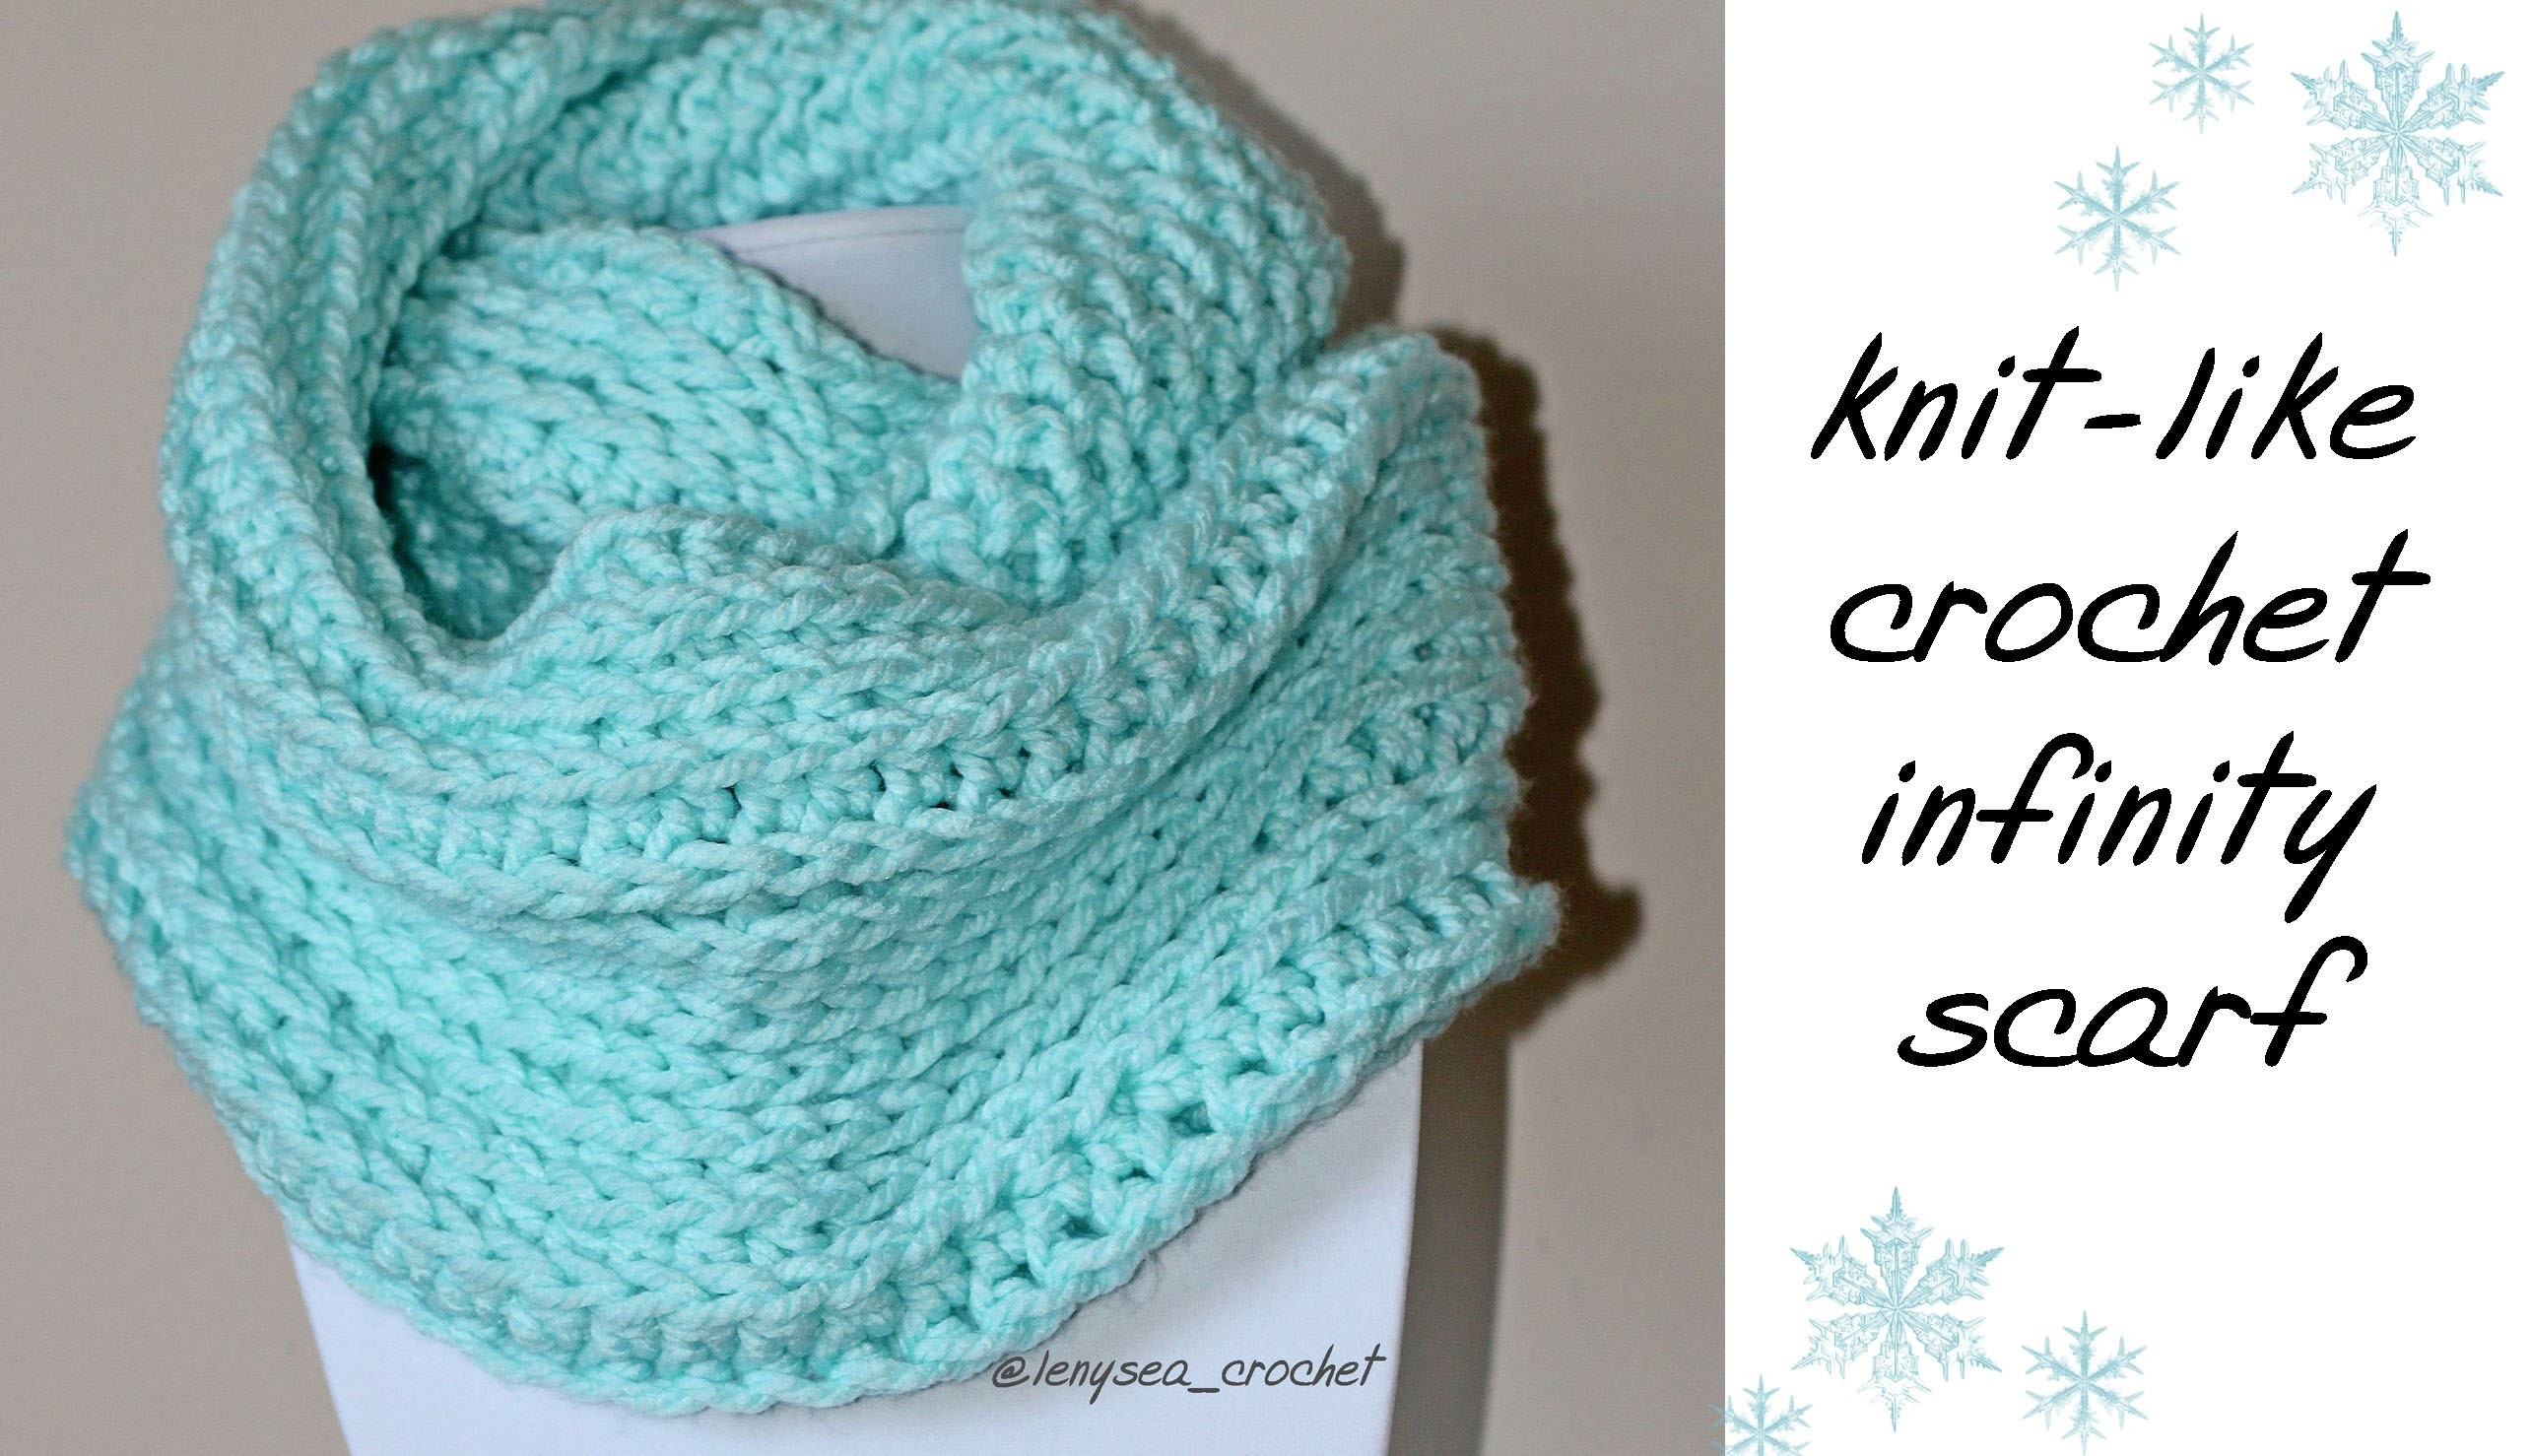 How To Knit-Like Crochet Infinity Scarf